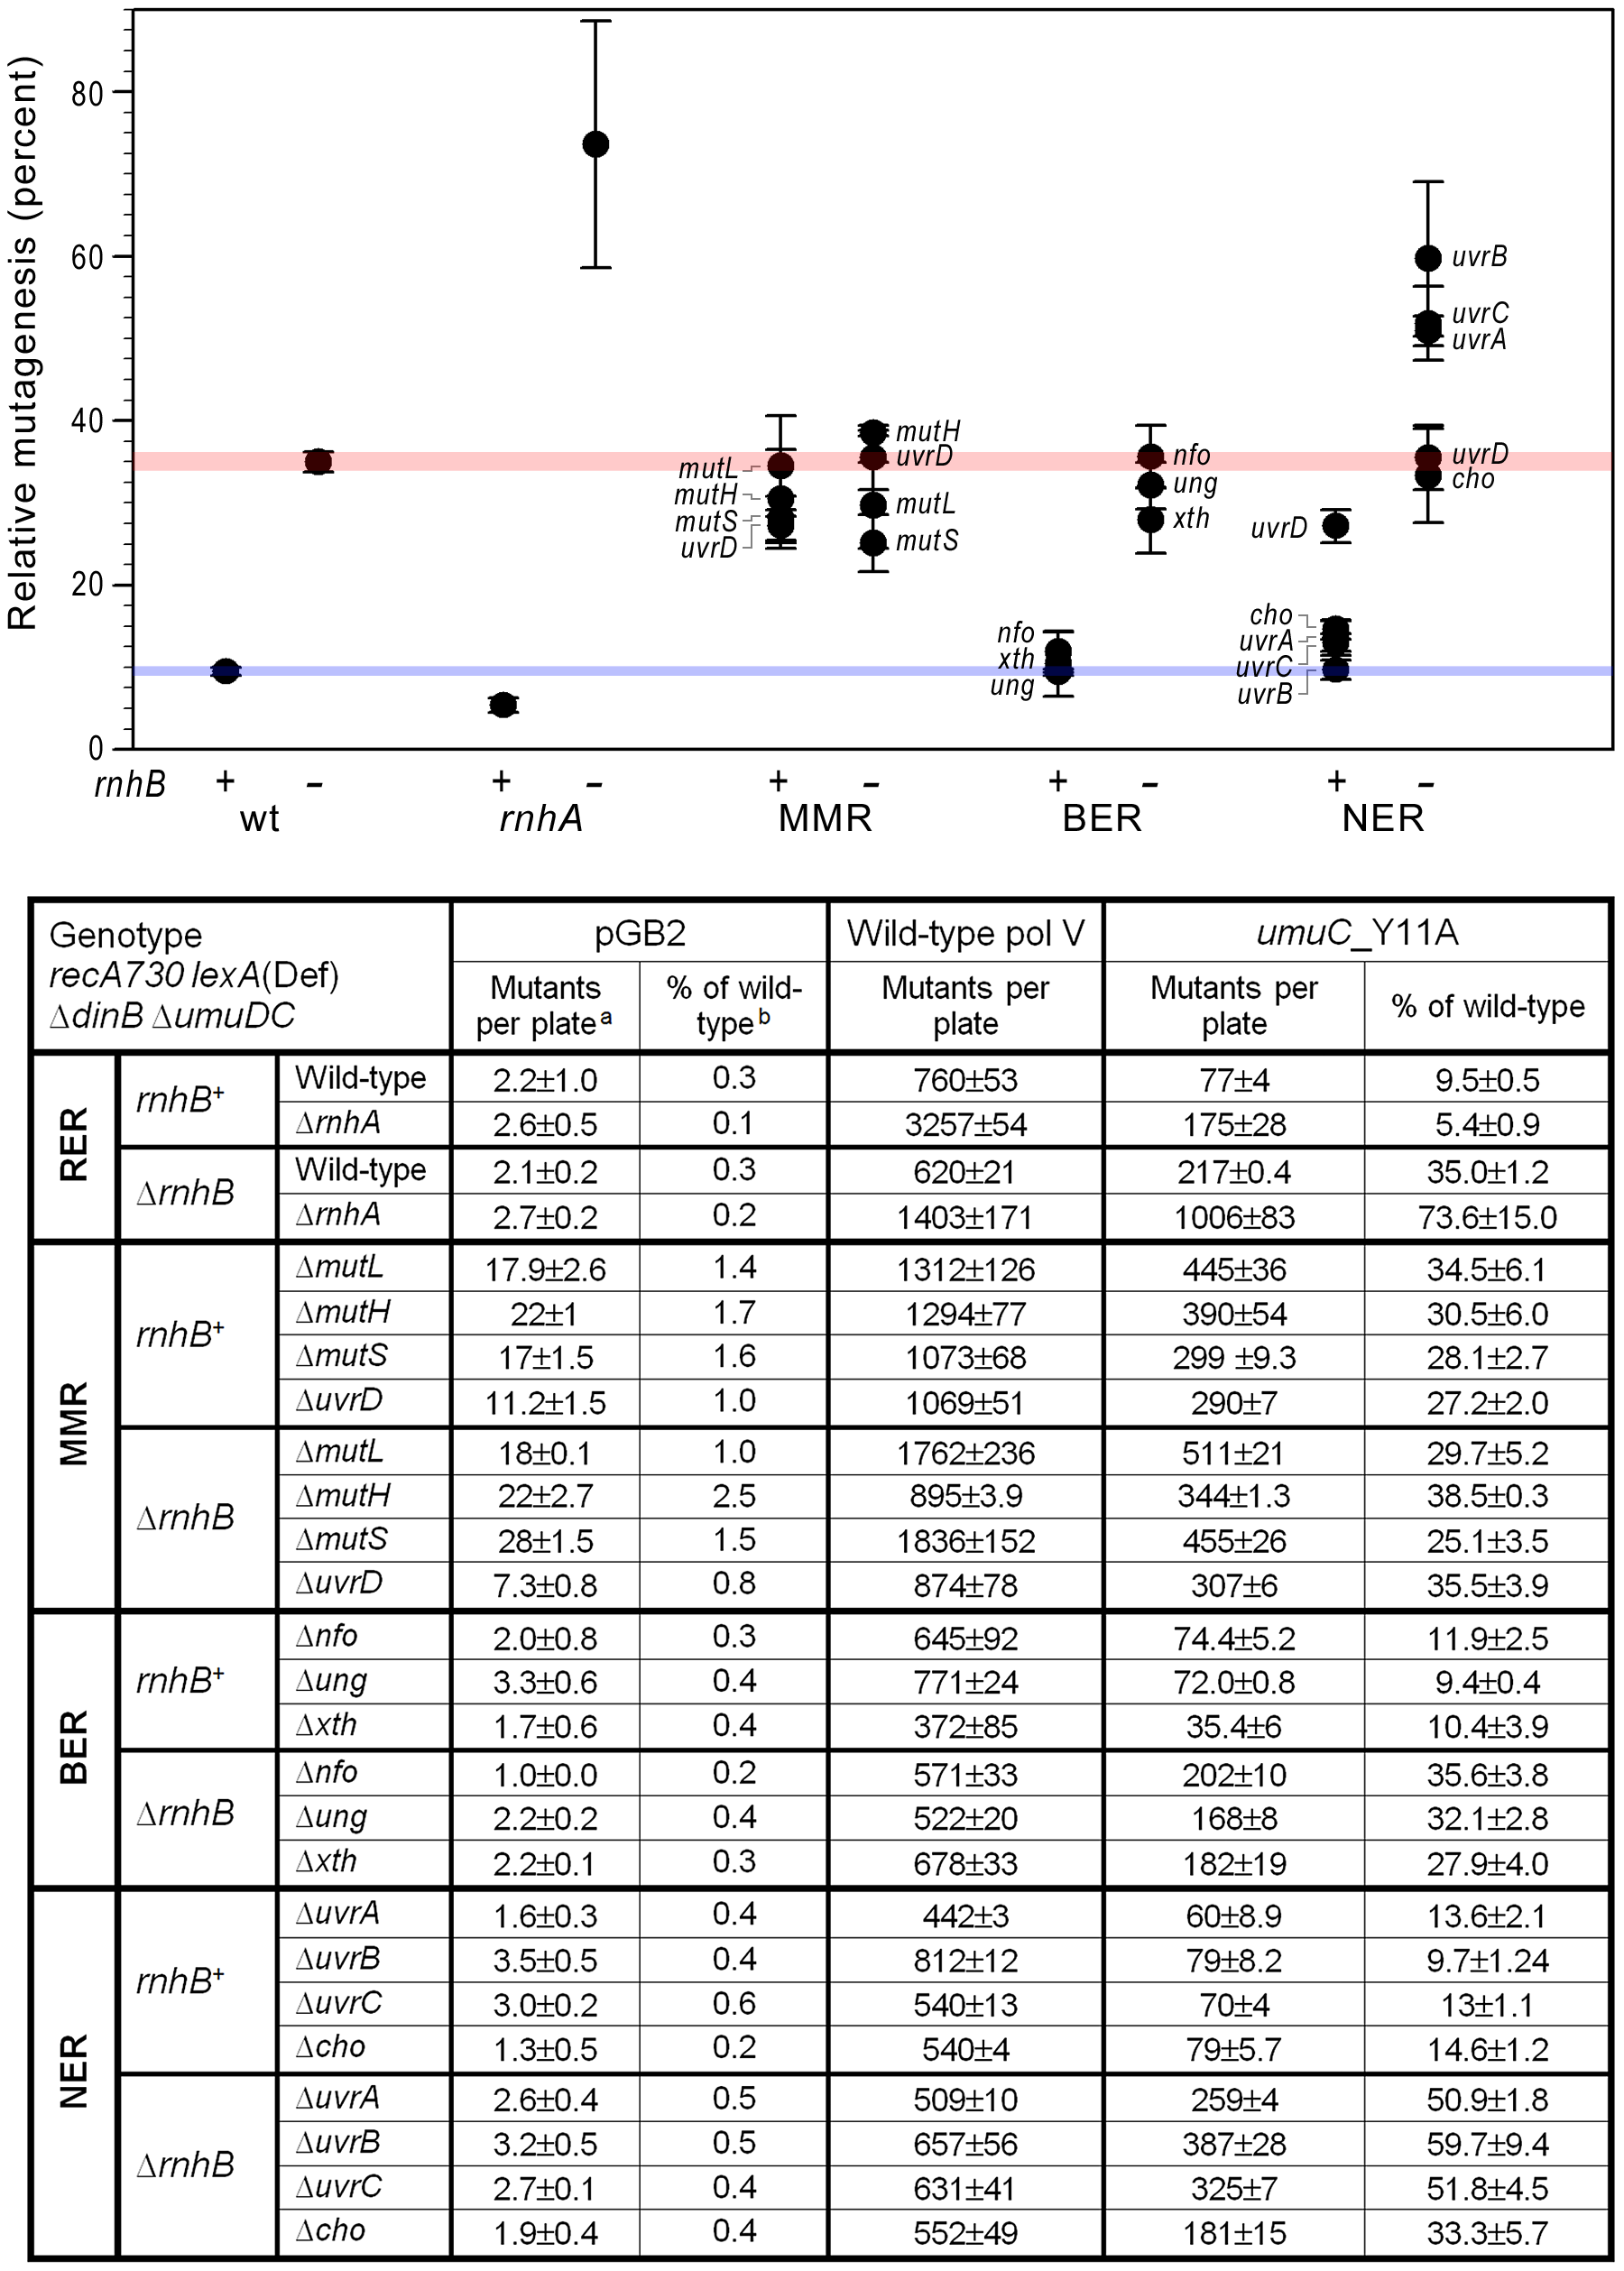 Effect of inactivating RER, MMR, BER and NER on spontaneous mutagenesis in <i>recA730 lexA</i>(Def) Δ<i>dinB</i> strains Δ<i>umuDC</i>.